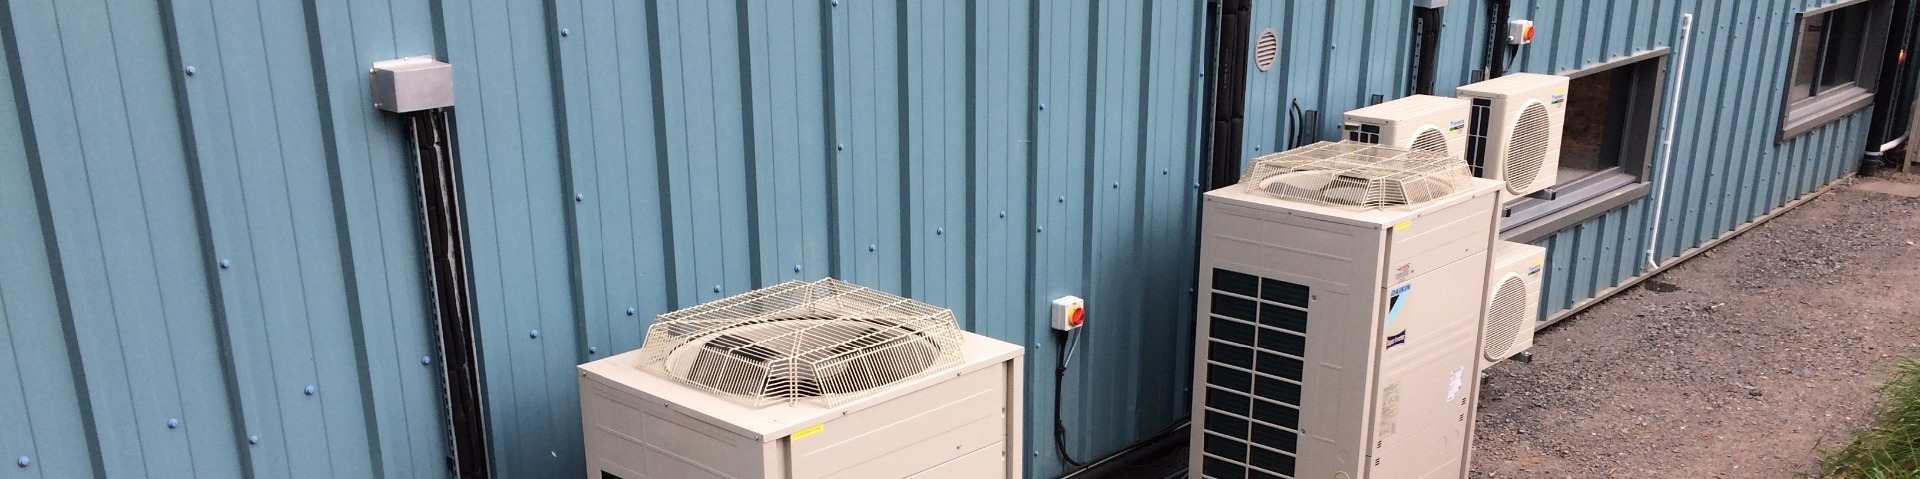 AMS Exeter Air Conditioning Installation